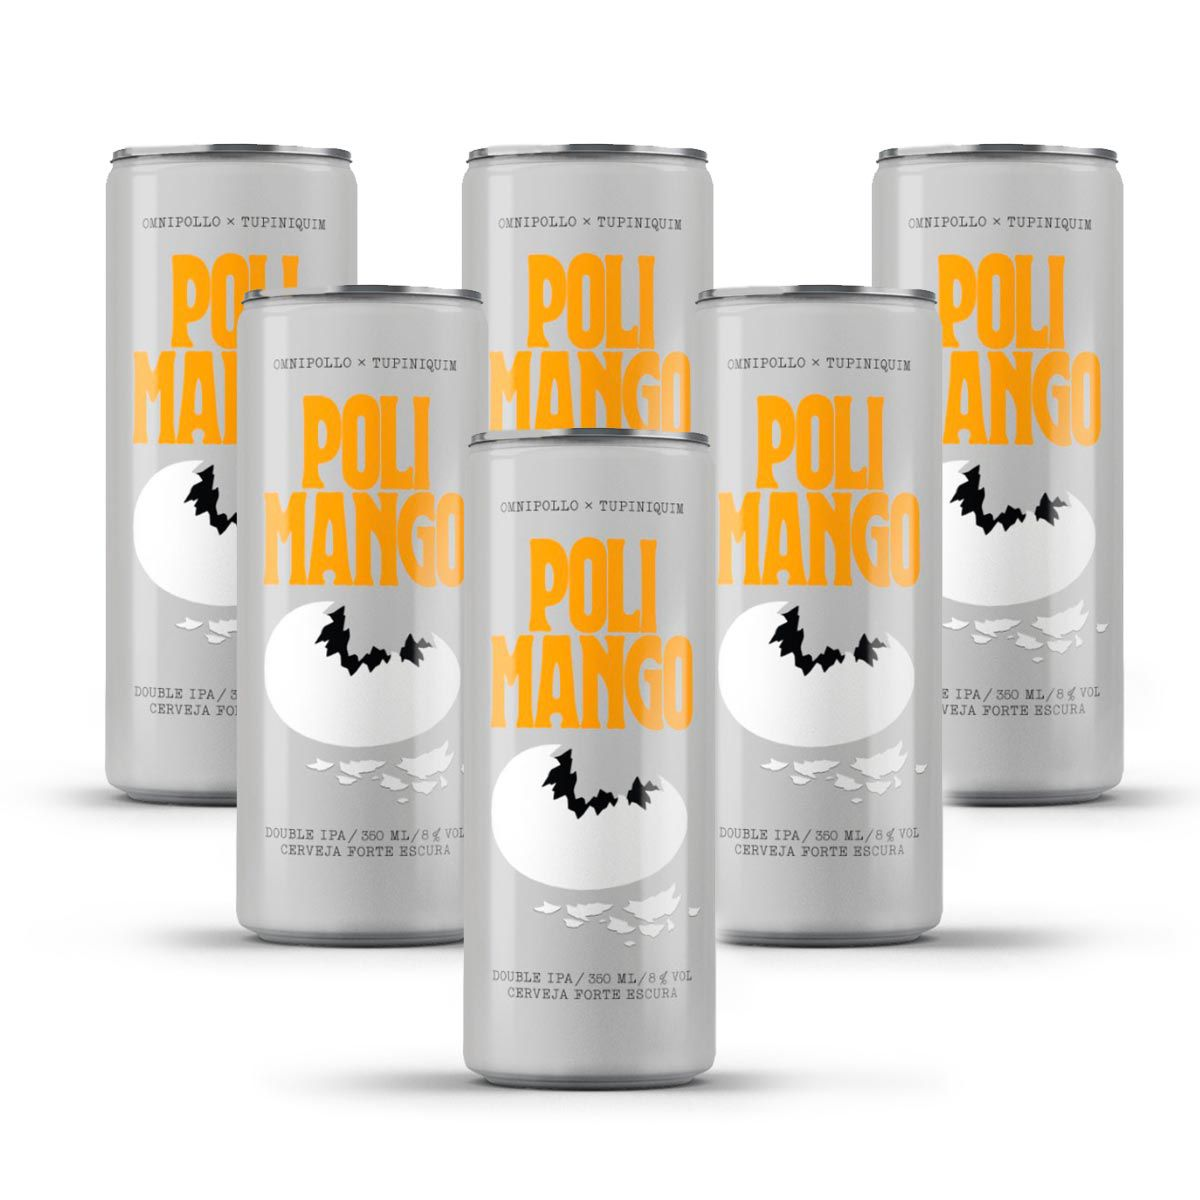 Pack Tupiniquim Polimango Double IPA 6 latas 350ml